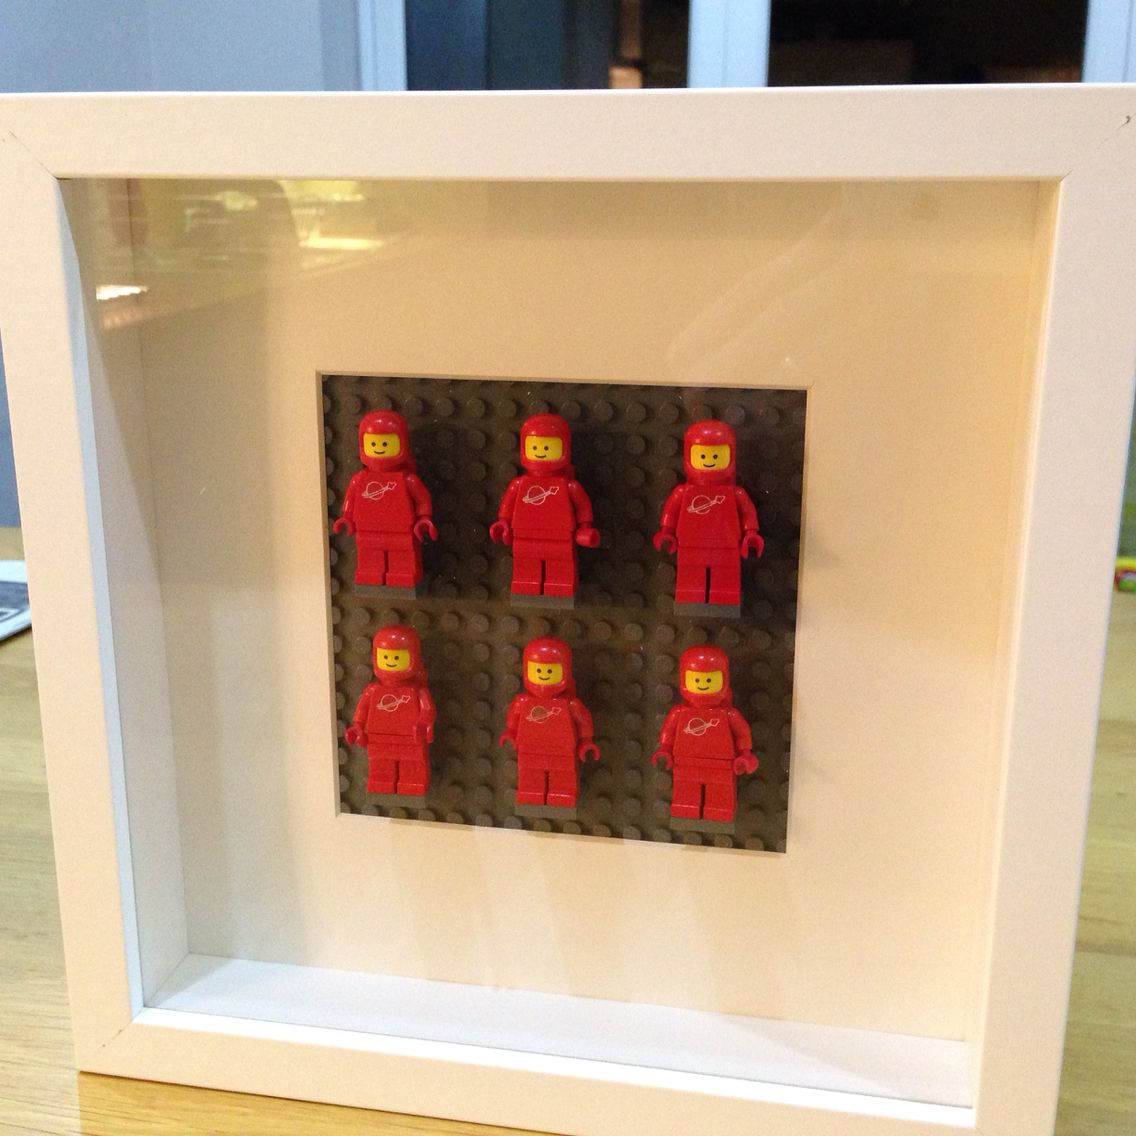 Lego vintage spacemen wall art using IKEA Ribba Picture